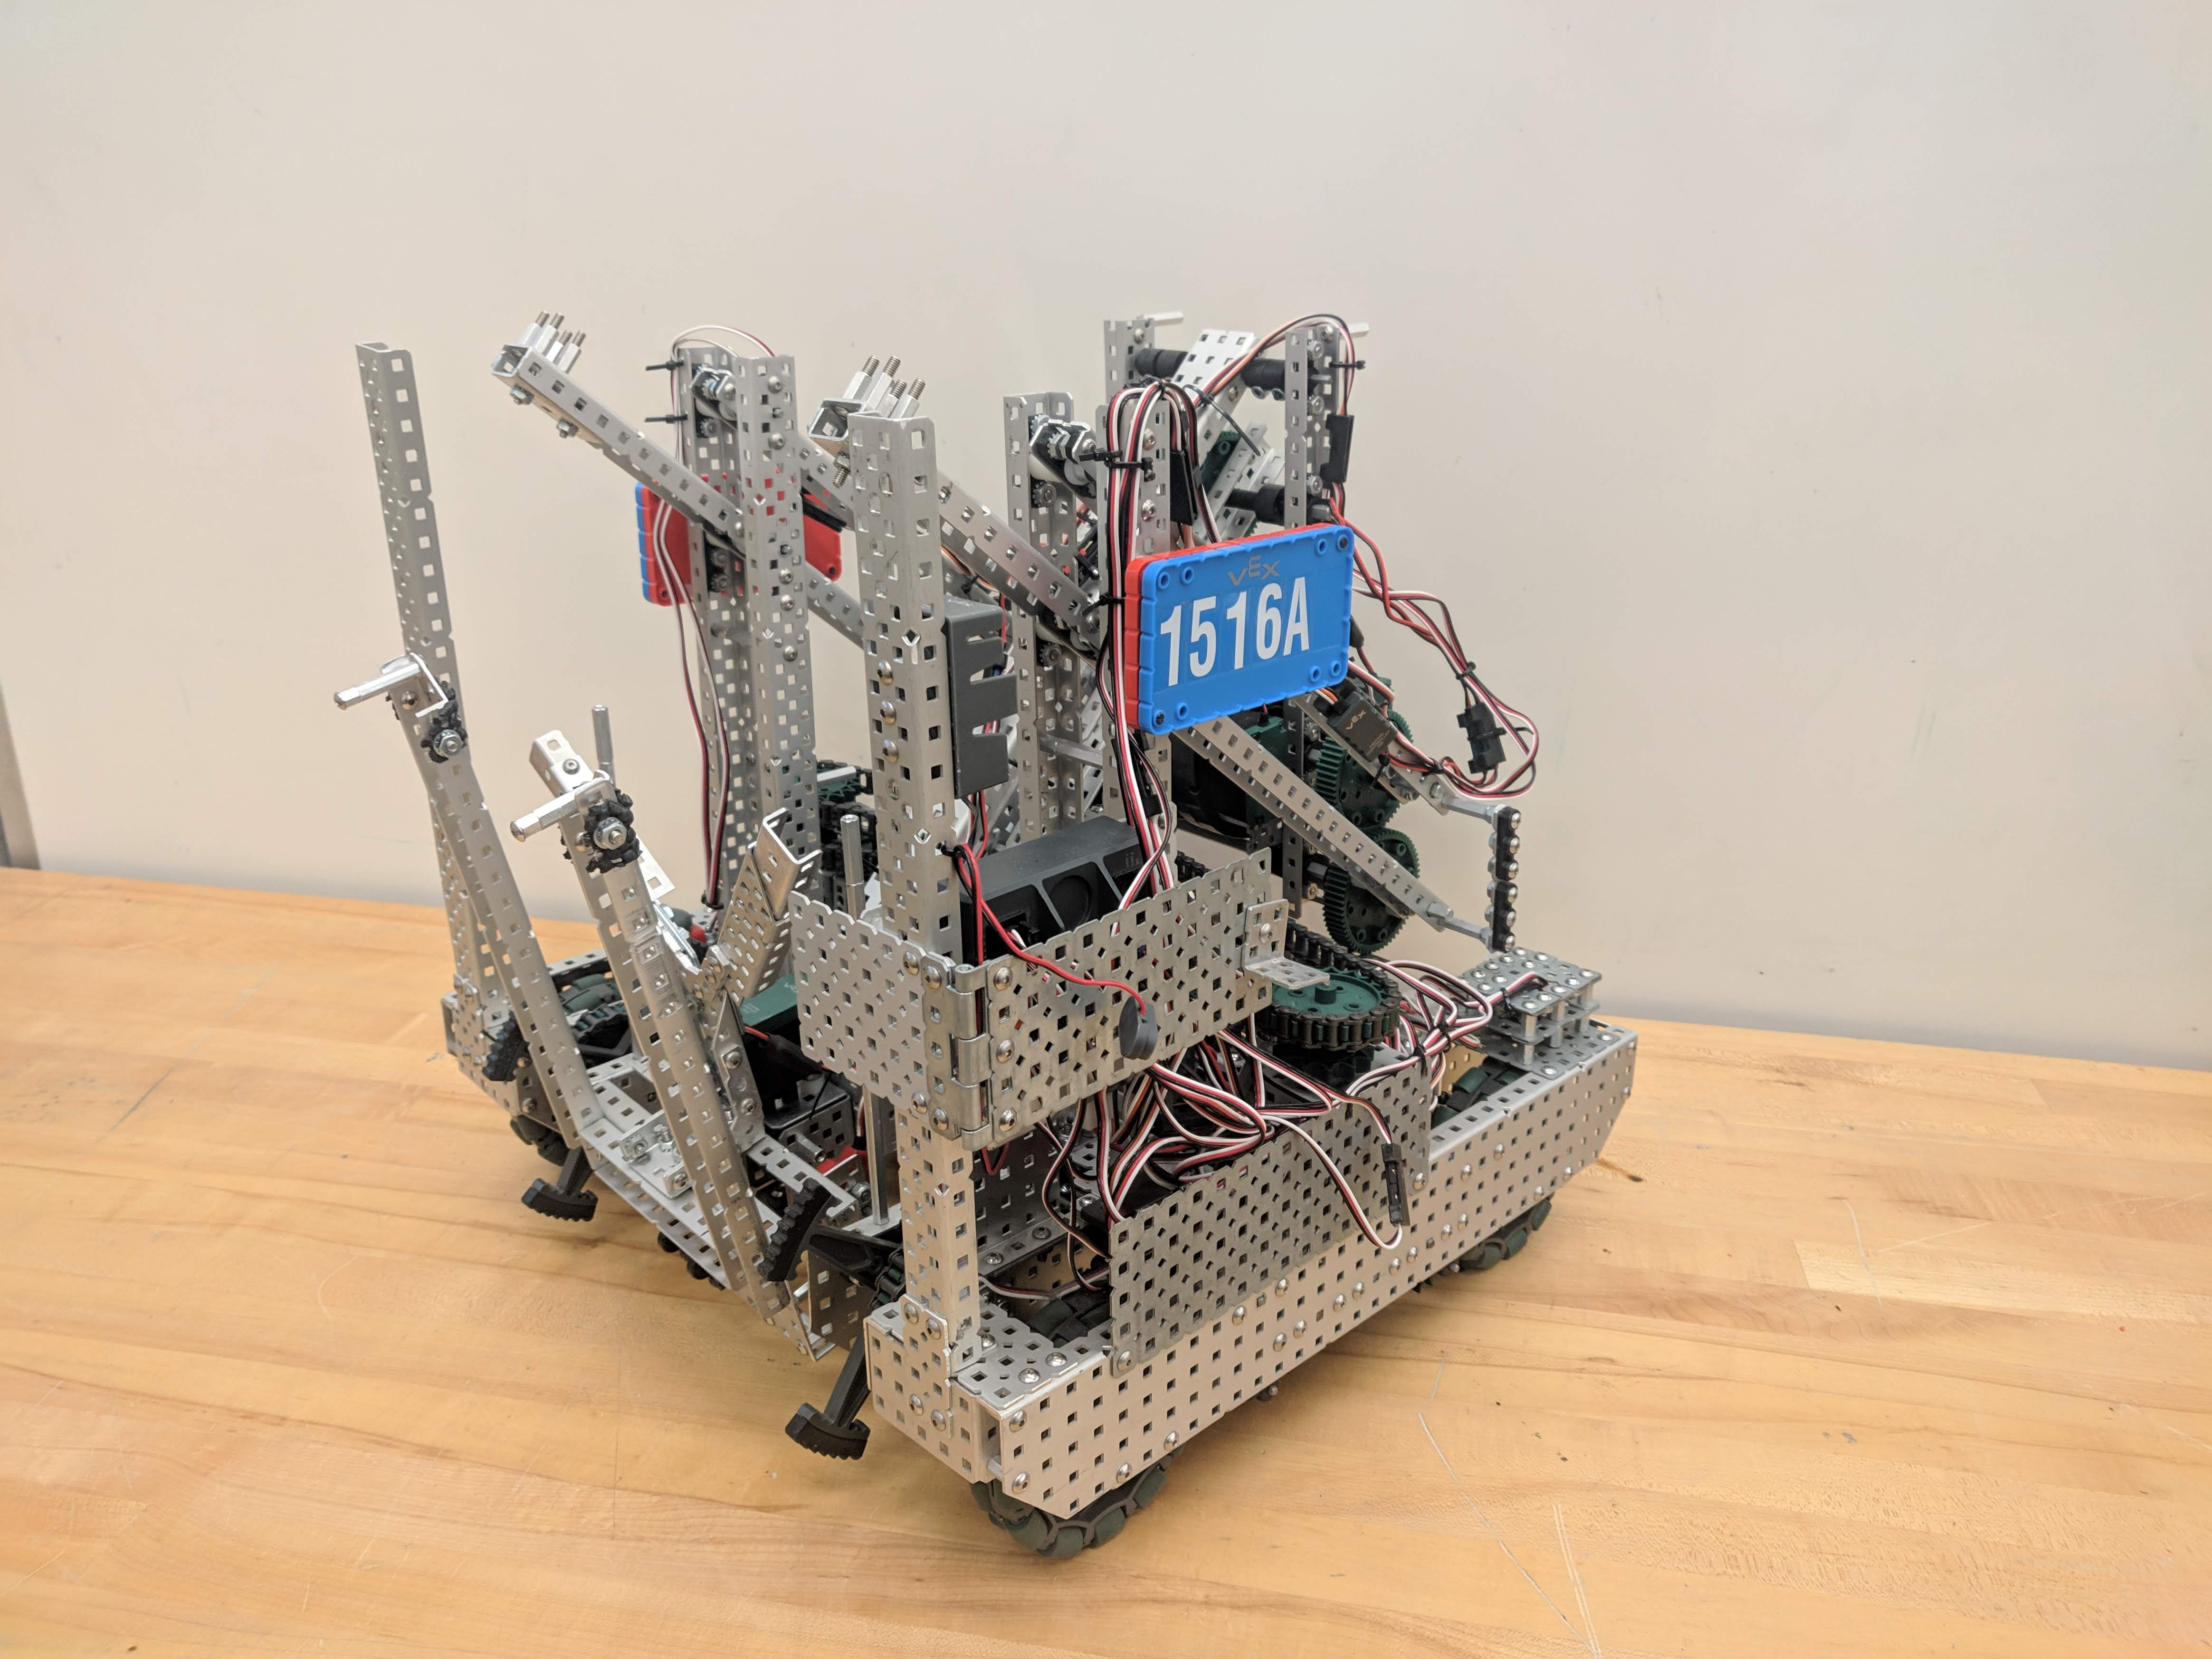 The 1516A Robot from the VEX Turning Point Season.